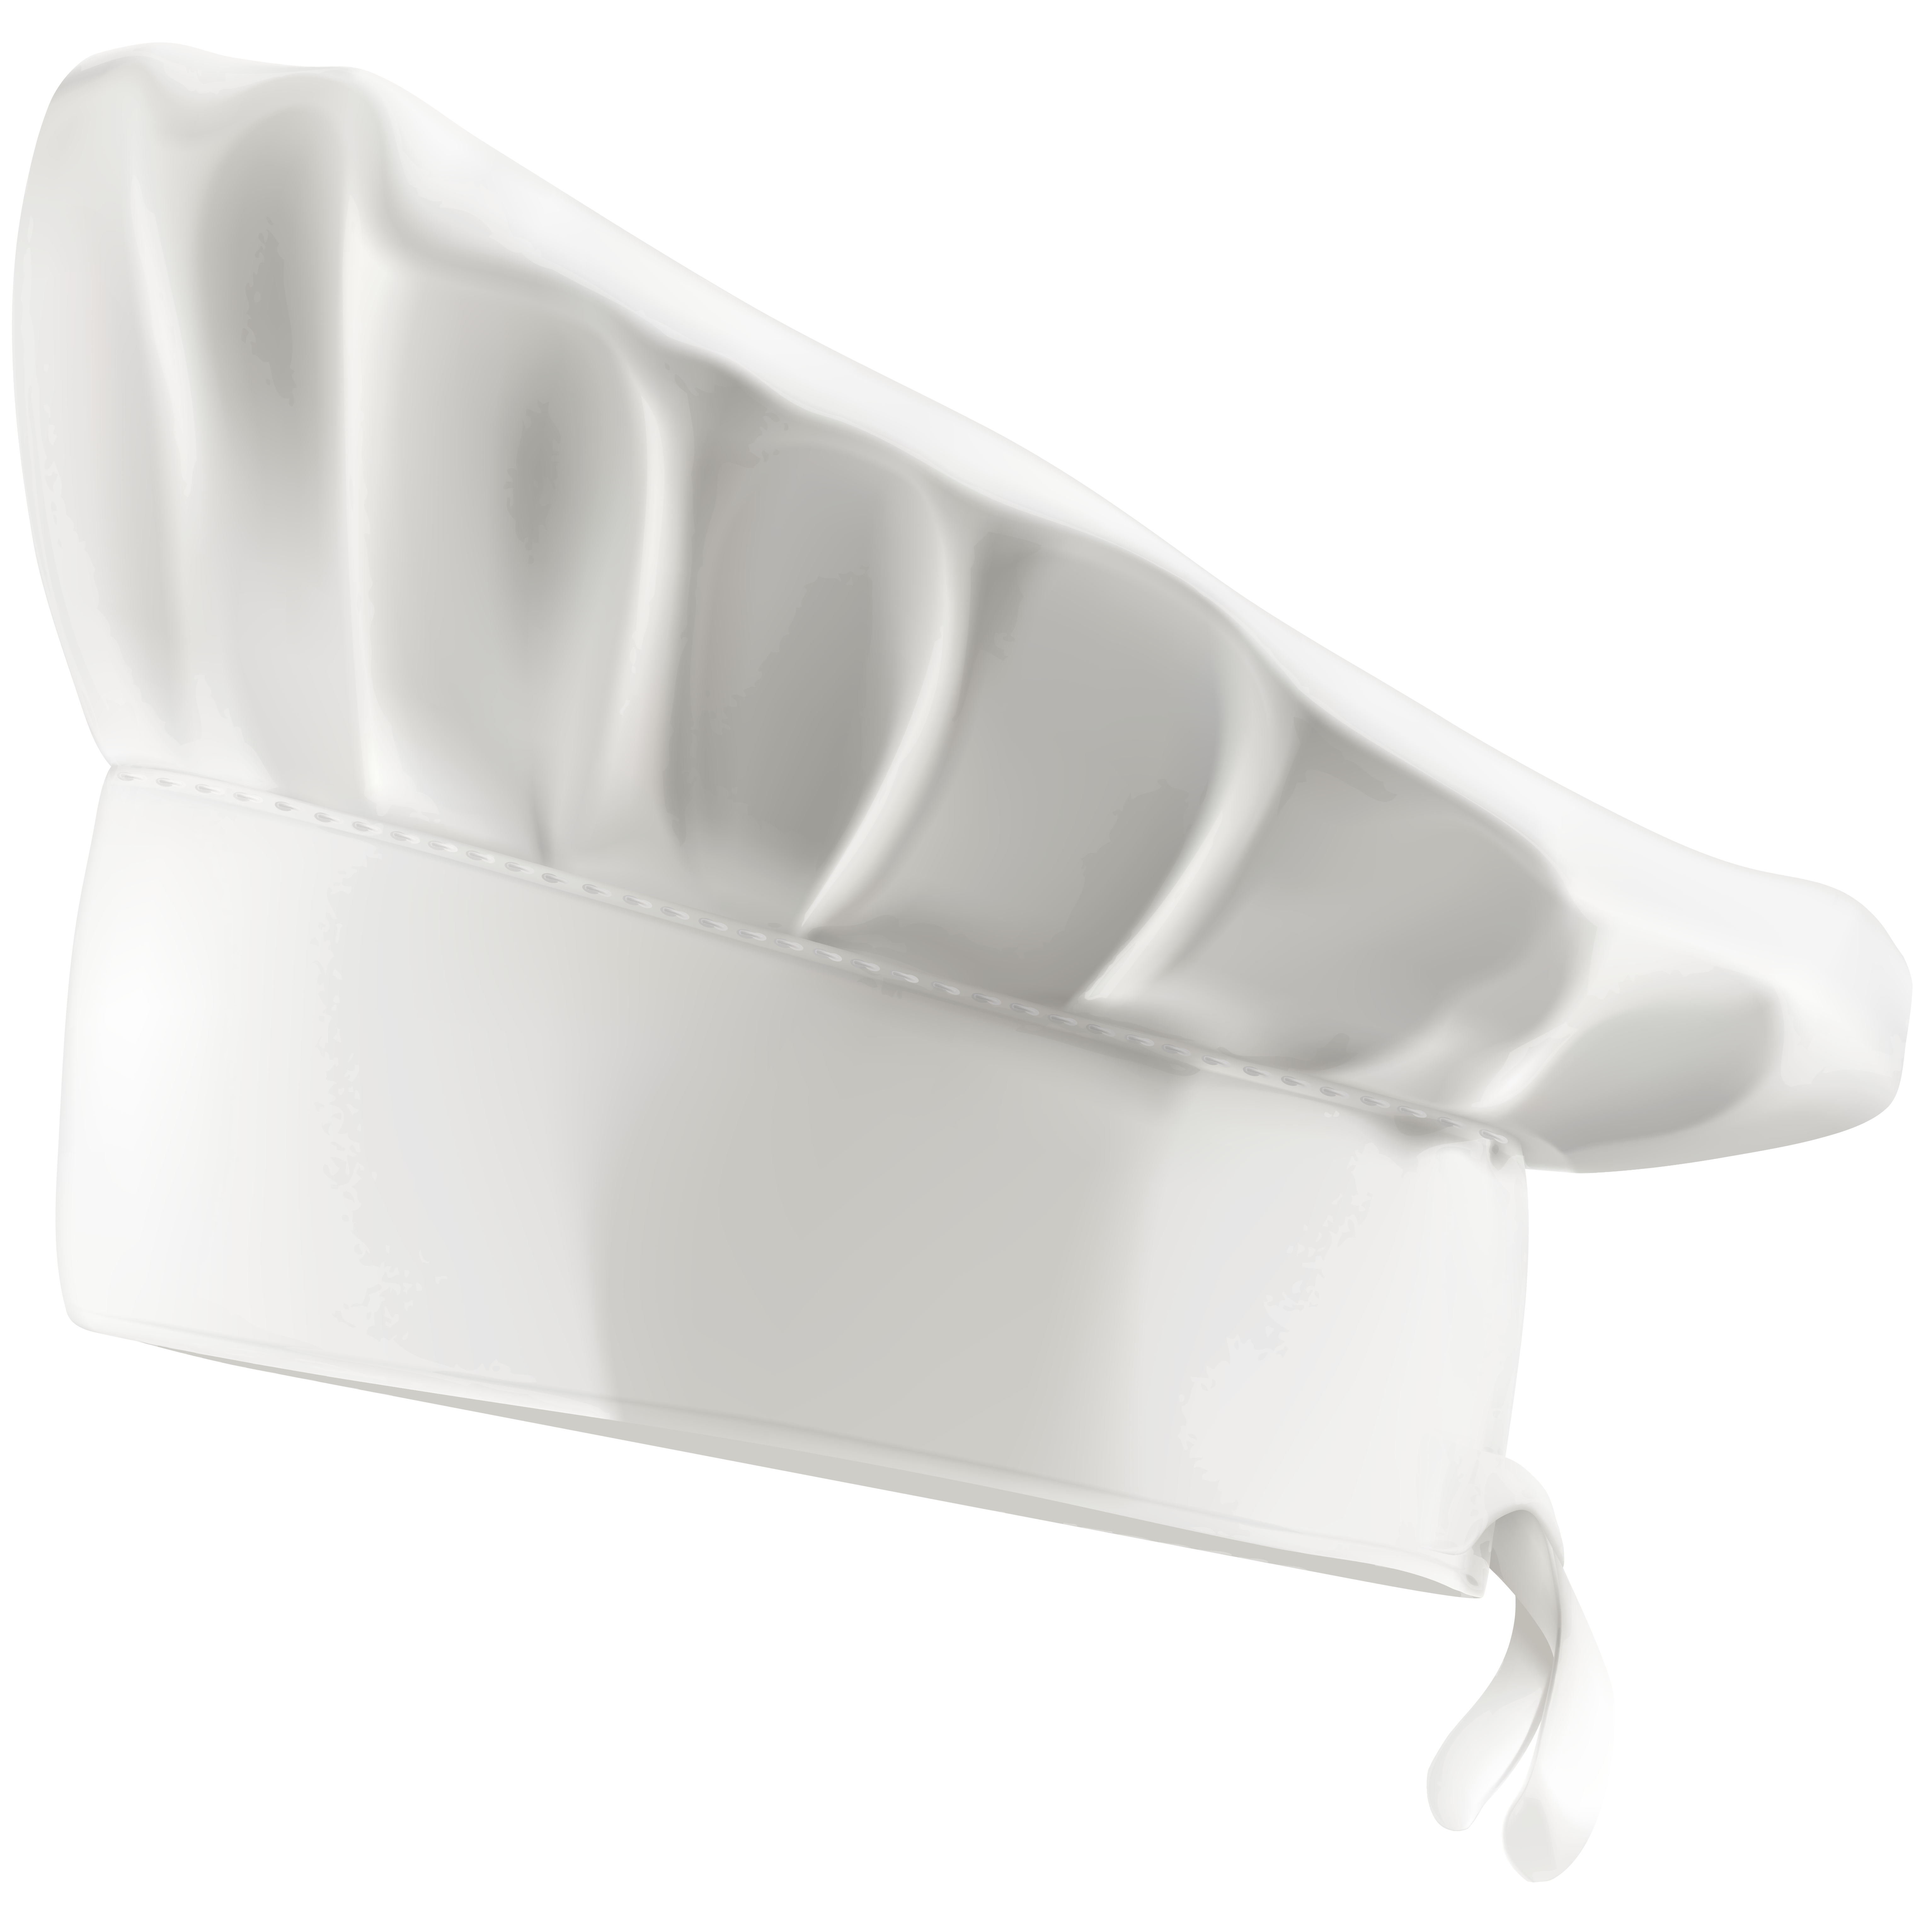 Chef hat transparent png. Clipart image gallery yopriceville